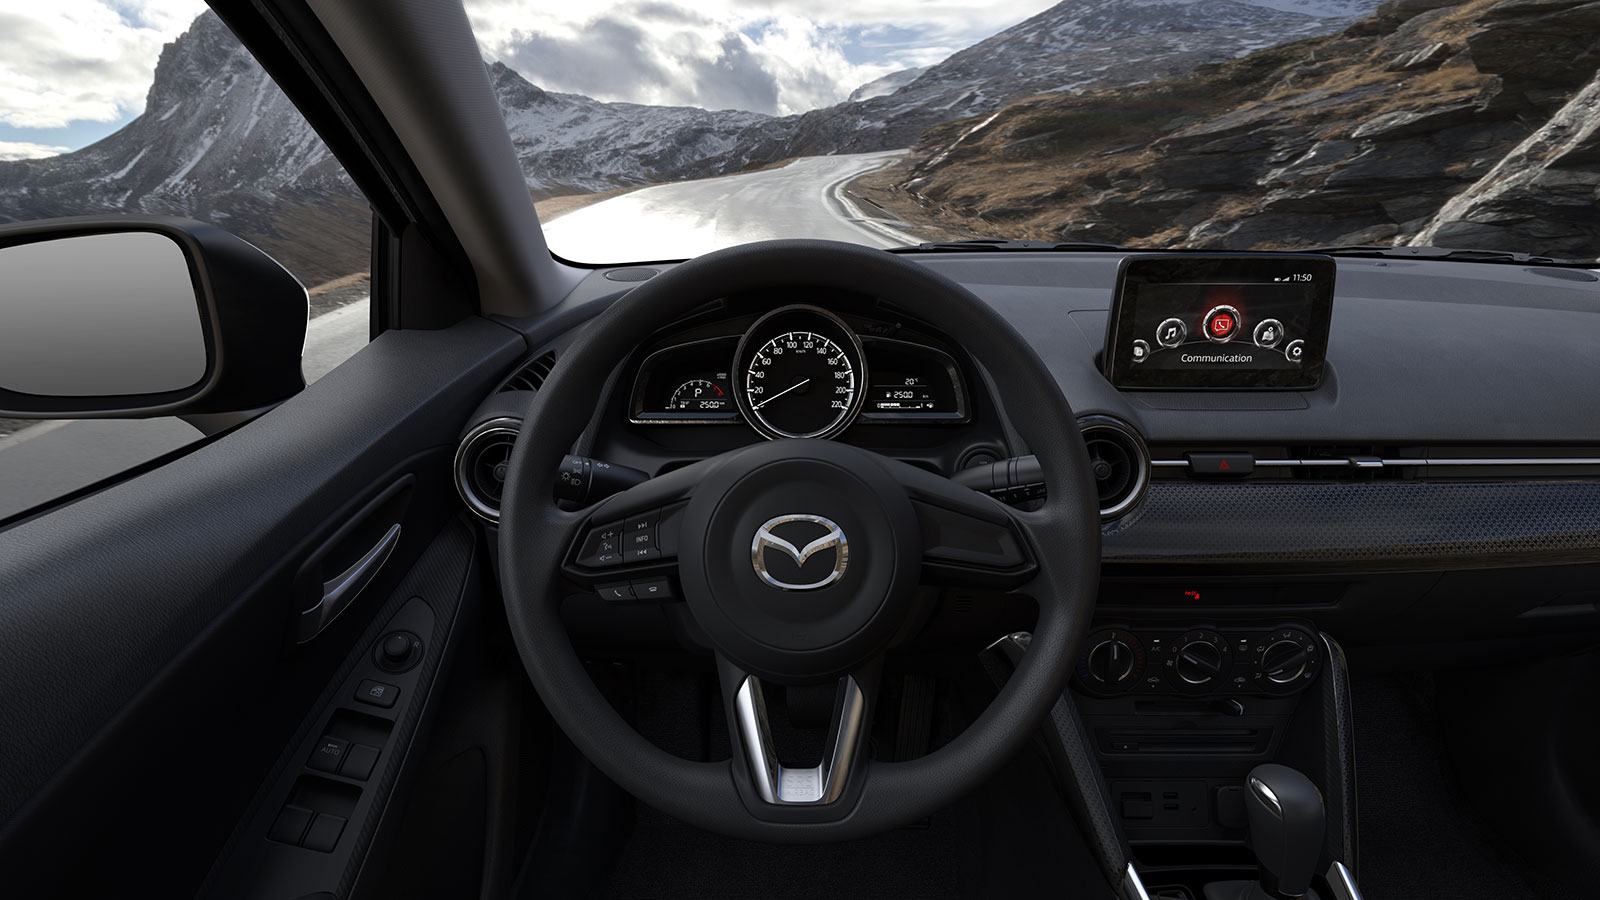 Mazda2 DLLR DM9GLAH 38P DAL INT High JPG 2 2000